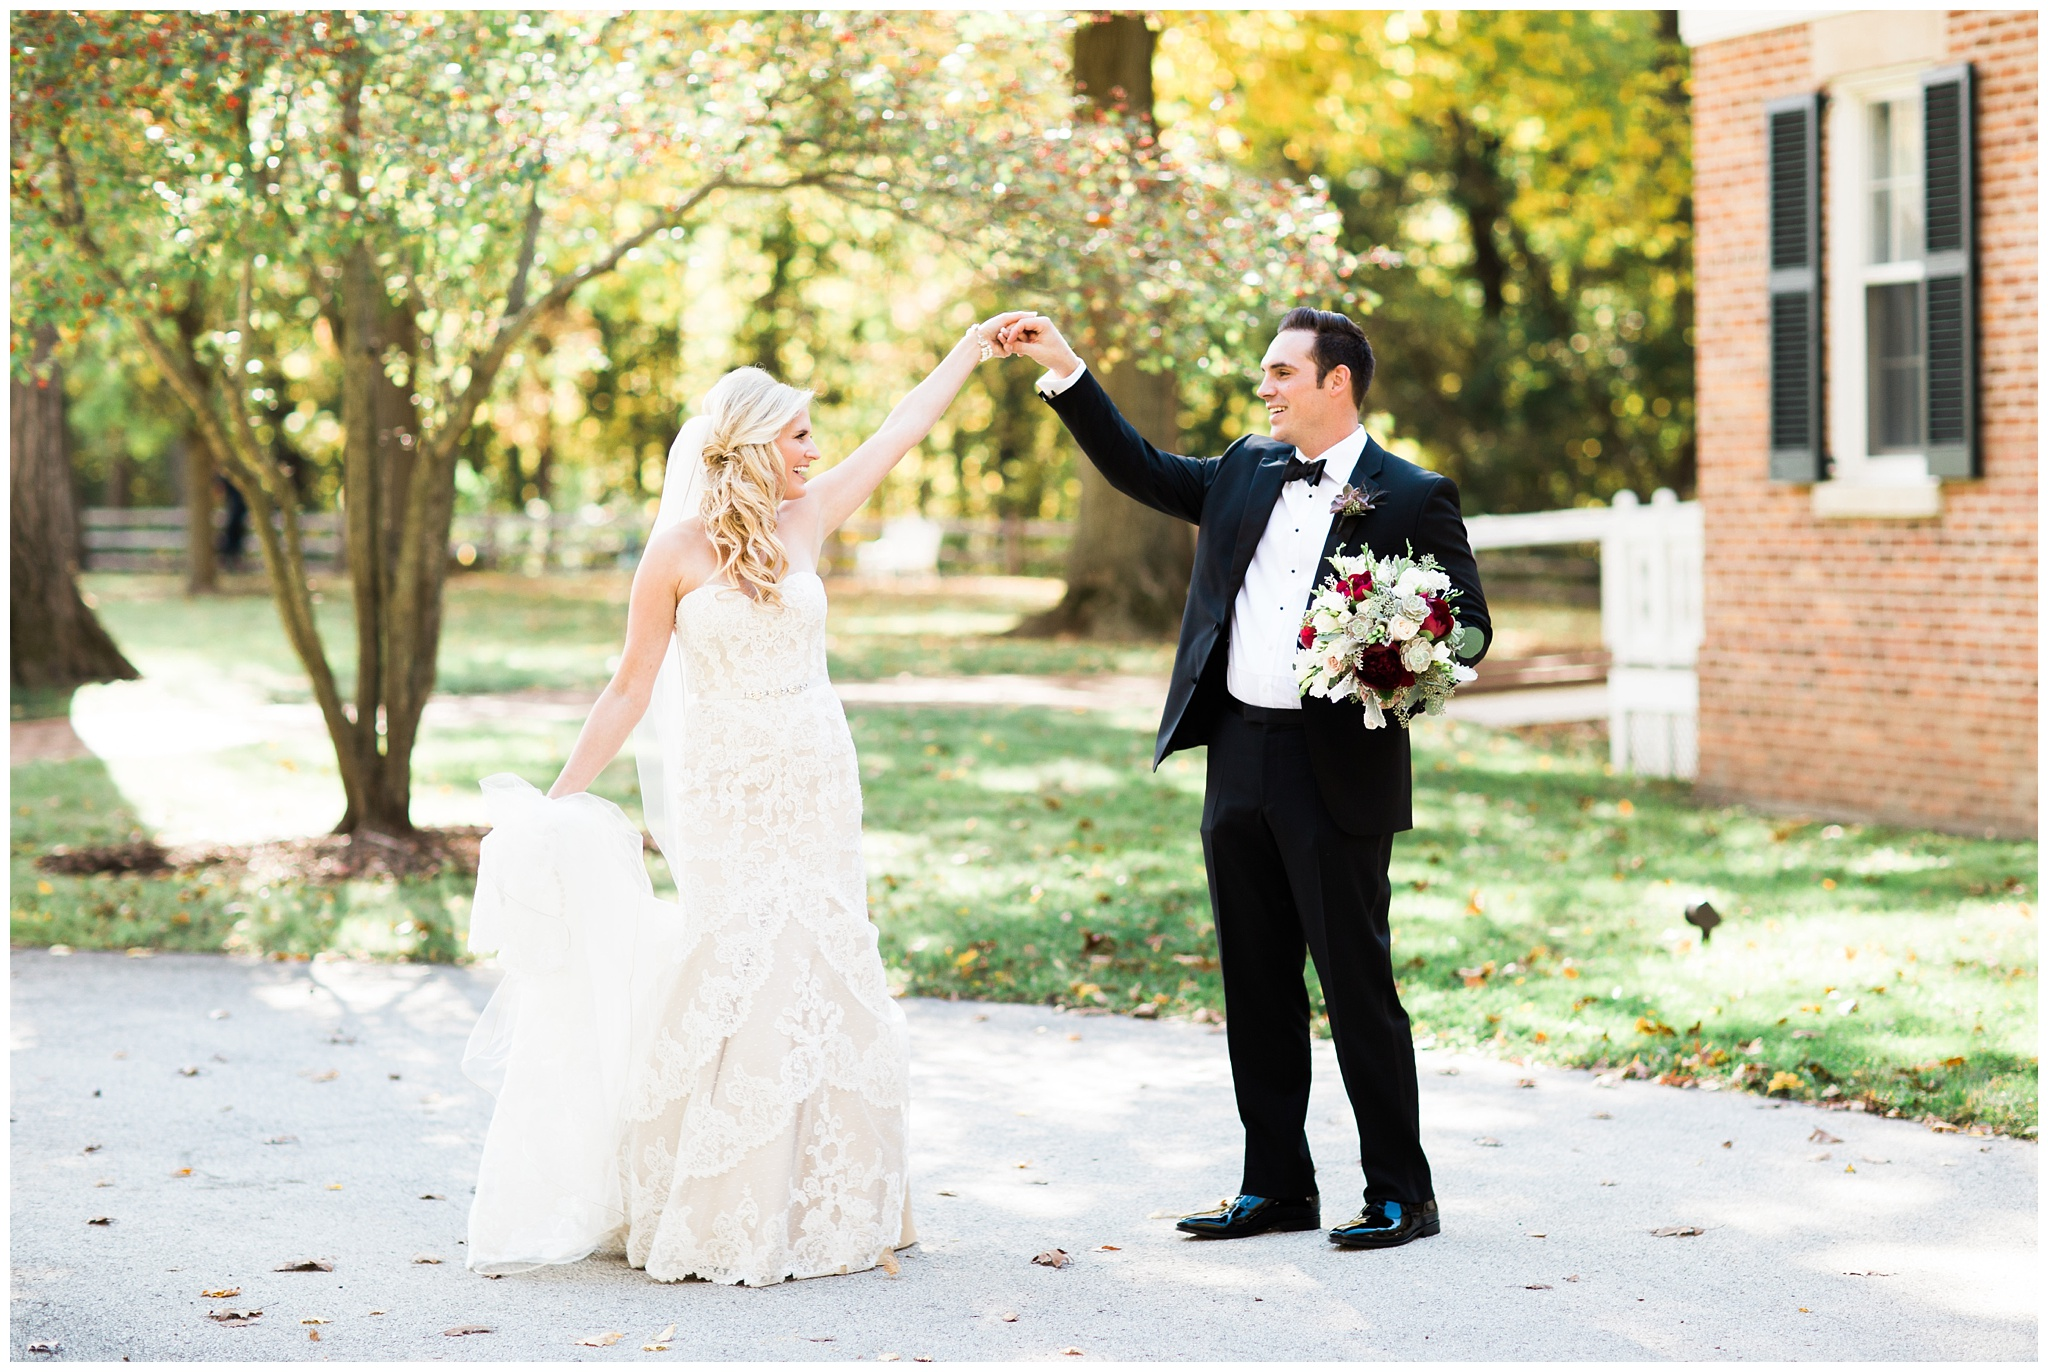 RebeccaHaleyPhotography_BarringtonPhotographer_ChicagoPhotographer_ChicagoWedding_0038.jpg